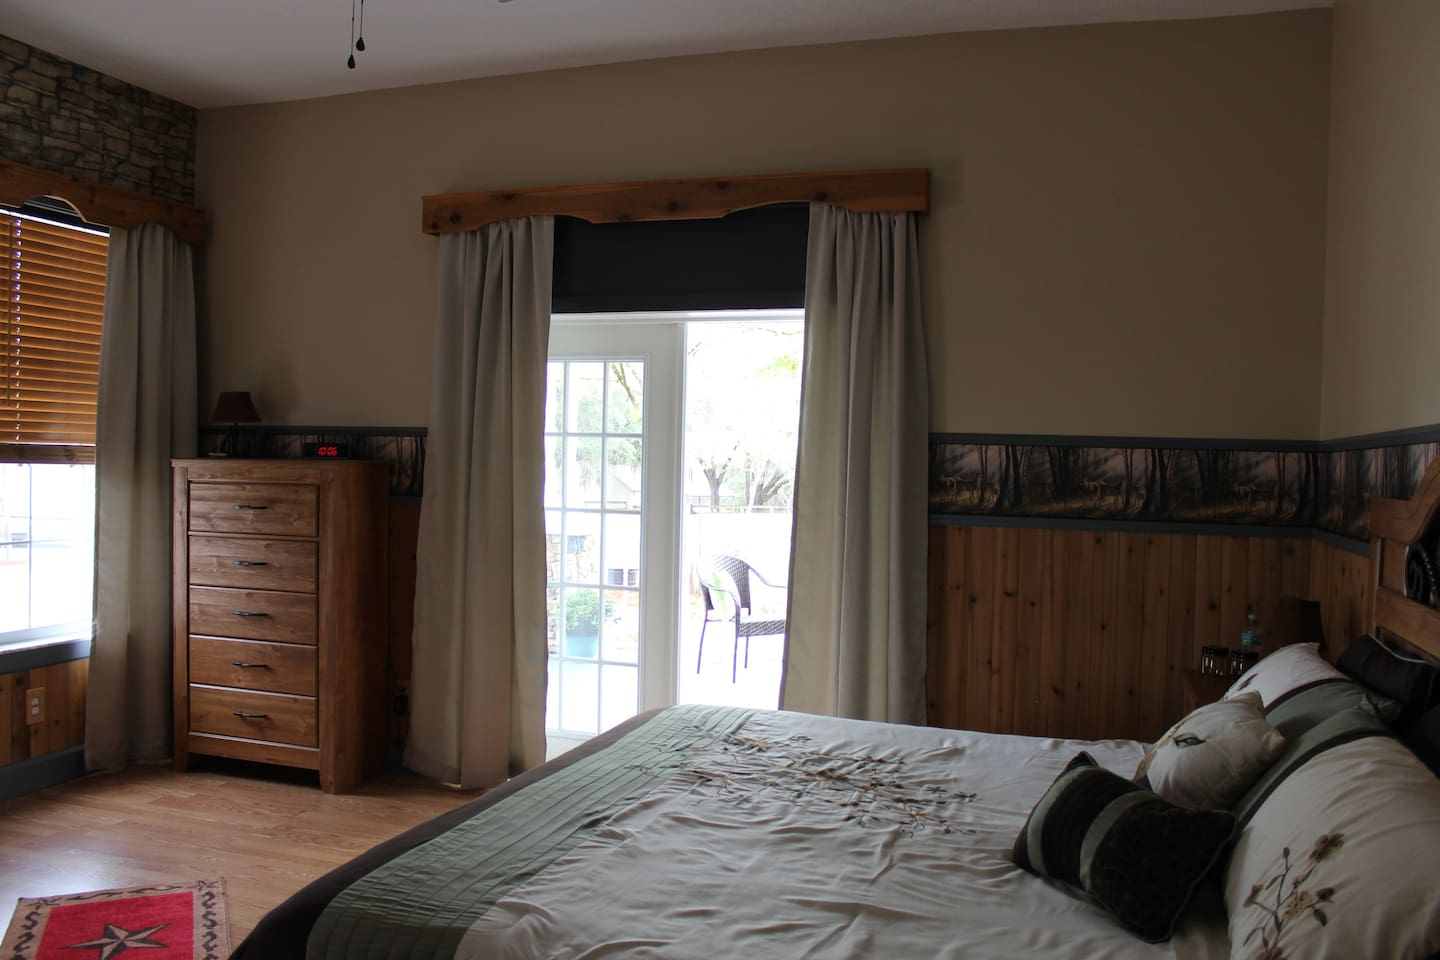 With French doors